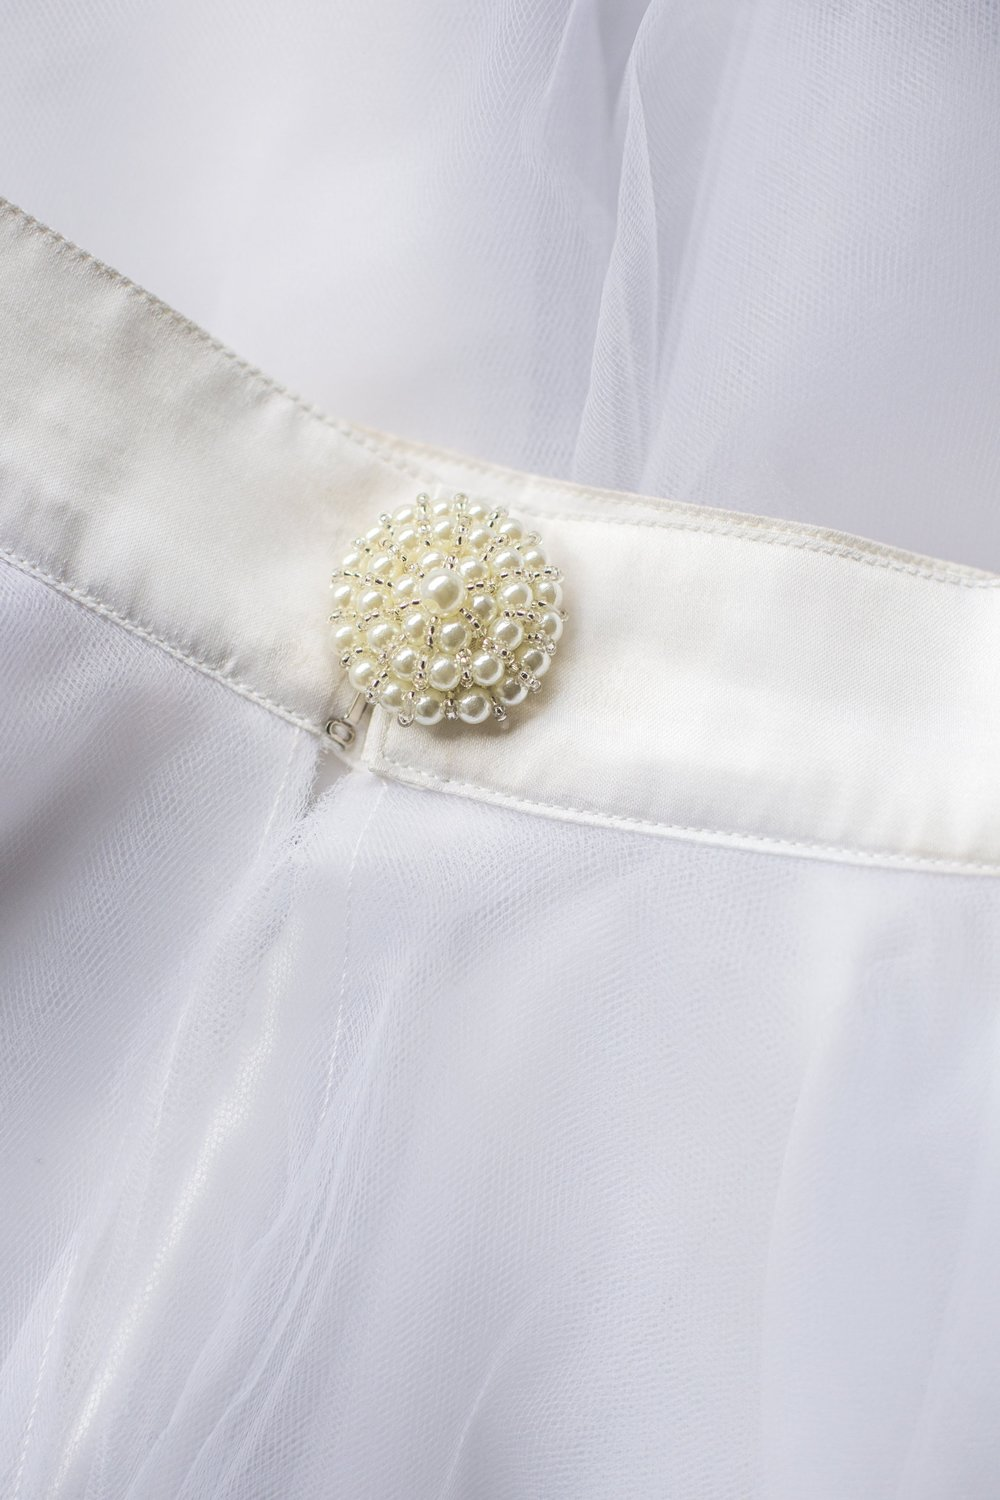 Tutu Moi Pearl Button Closure Detail